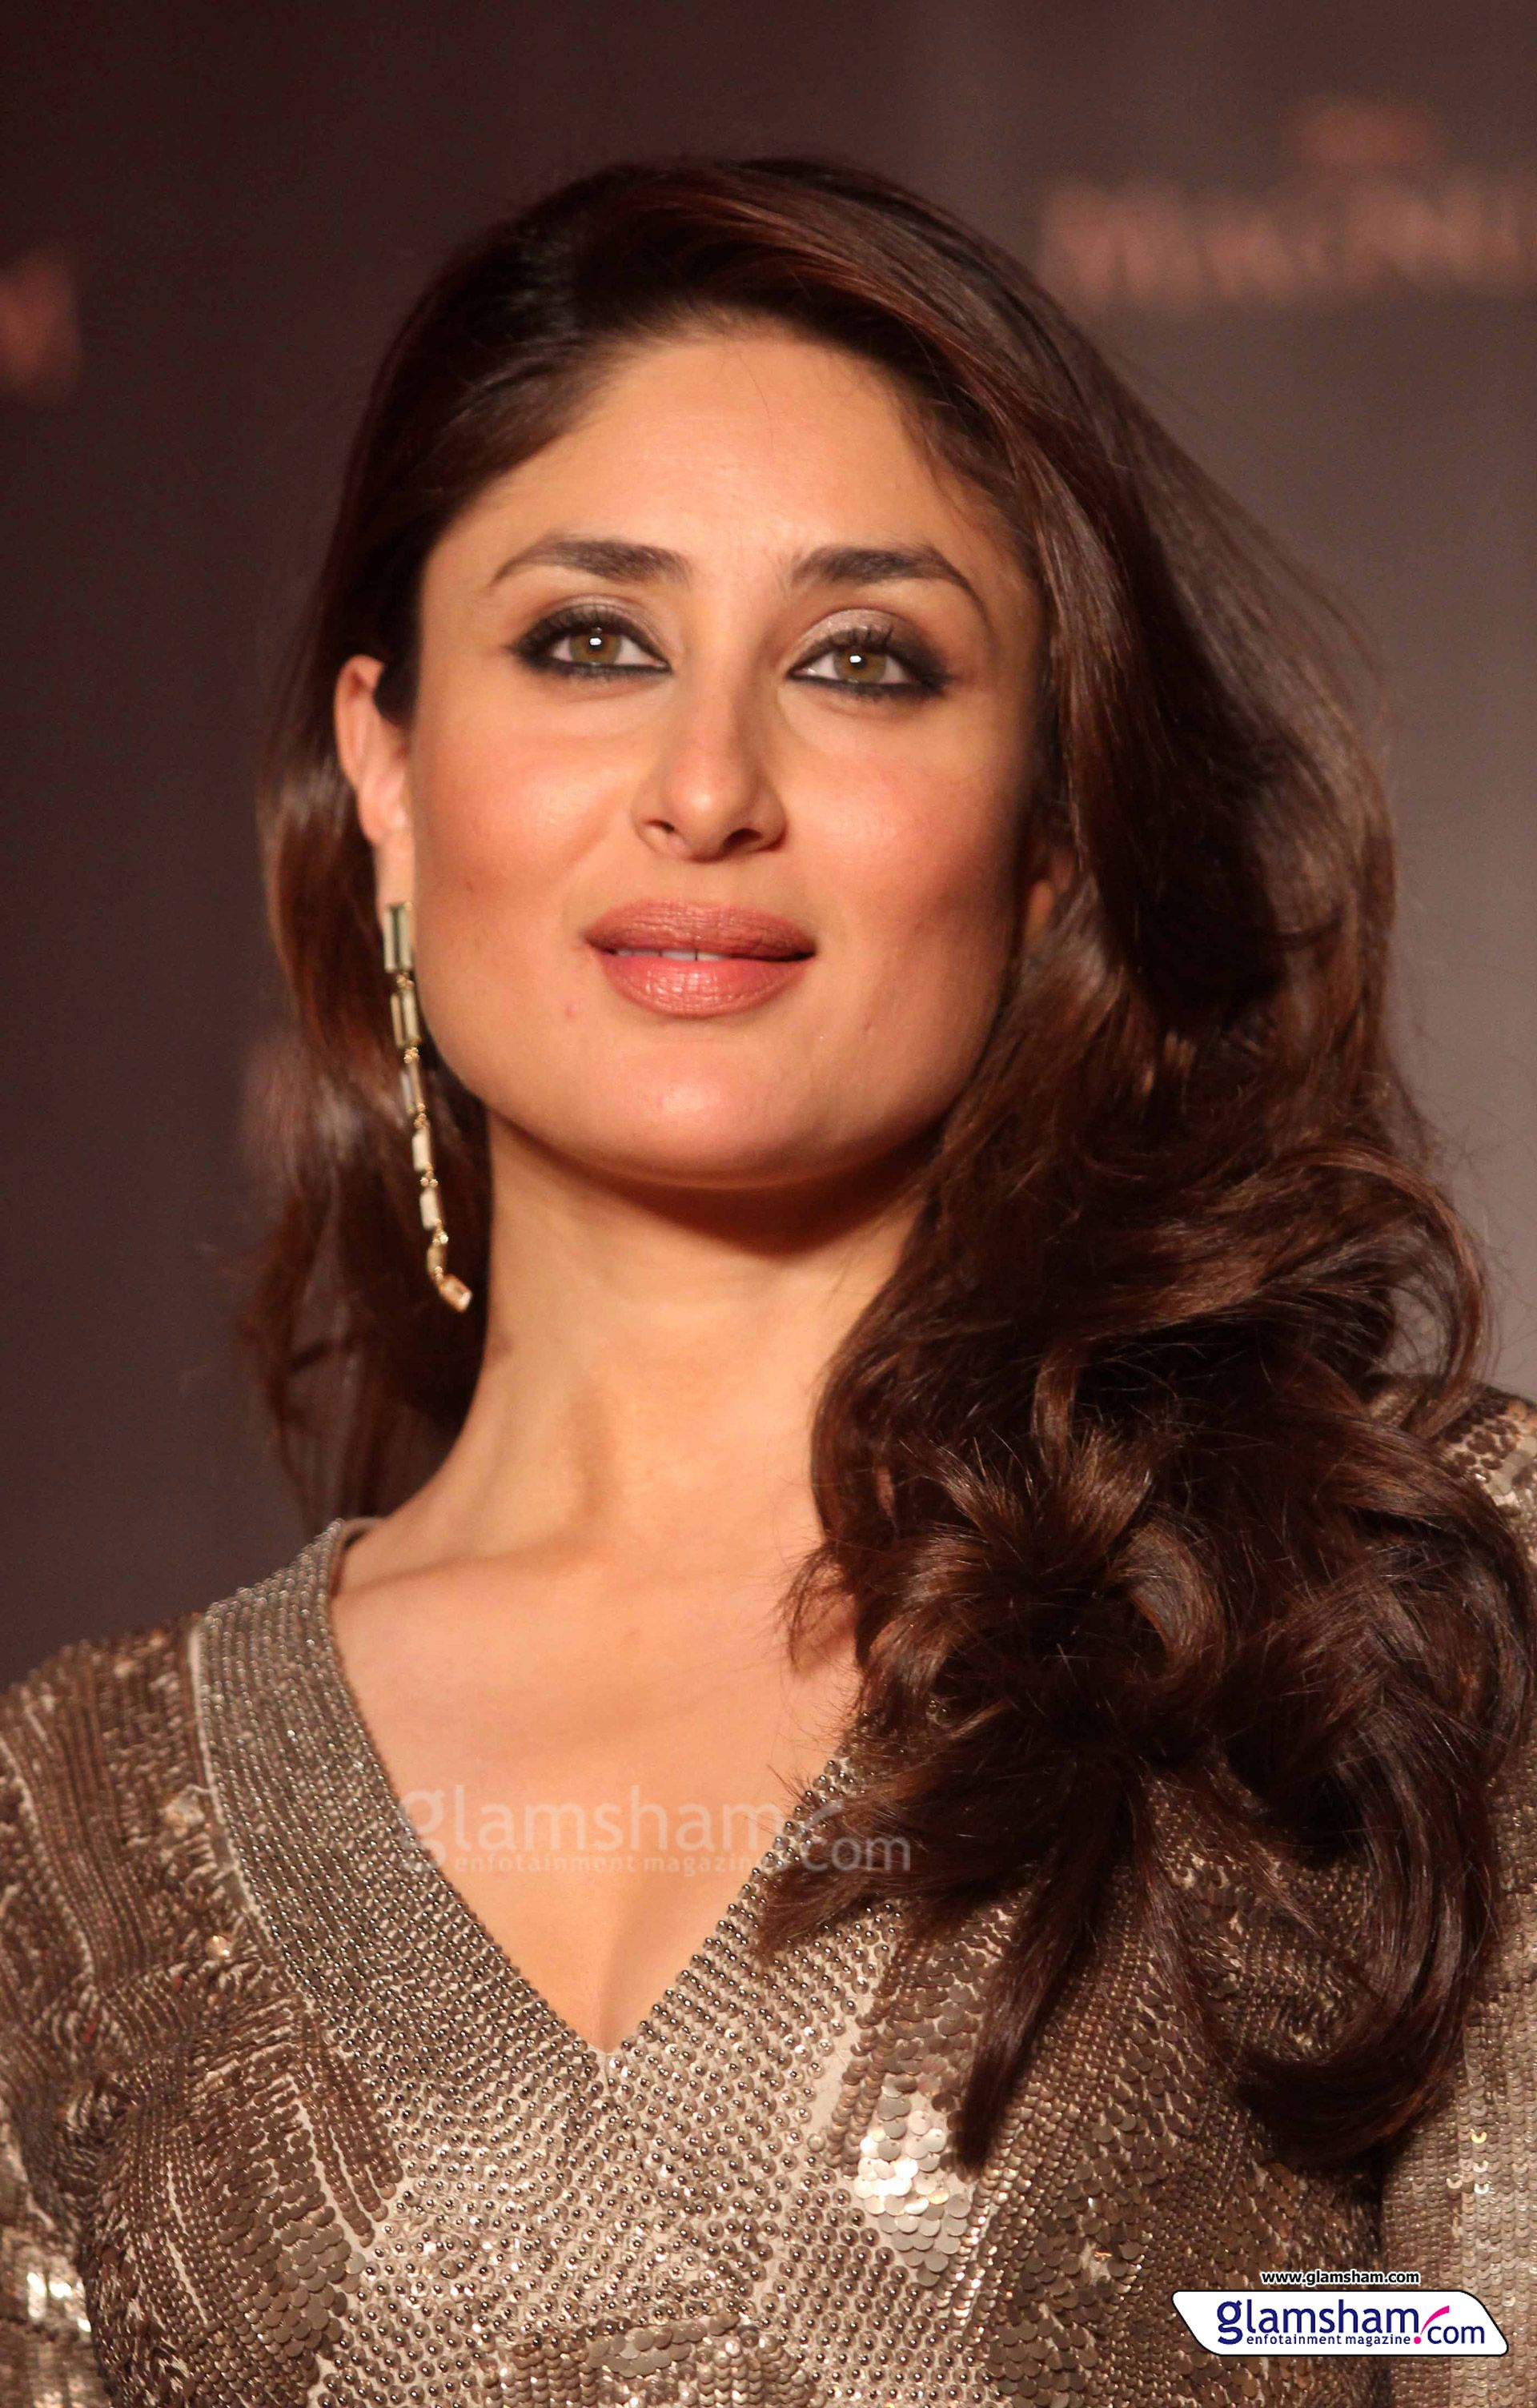 kareena kapoor filmographykareena kapoor baby, kareena kapoor filmi, kareena kapoor saif ali khan, kareena kapoor khan, kareena kapoor 2017, kareena kapoor biography, kareena kapoor mp3, kareena kapoor films, kareena kapoor son, kareena kapoor biografia, kareena kapoor child, kareena kapoor kimdir, kareena kapoor klip, kareena kapoor family, kareena kapoor filmleri, kareena kapoor filmography, kareena kapoor performance, kareena kapoor and husband, kareena kapoor wiki, kareena kapoor and salman khan